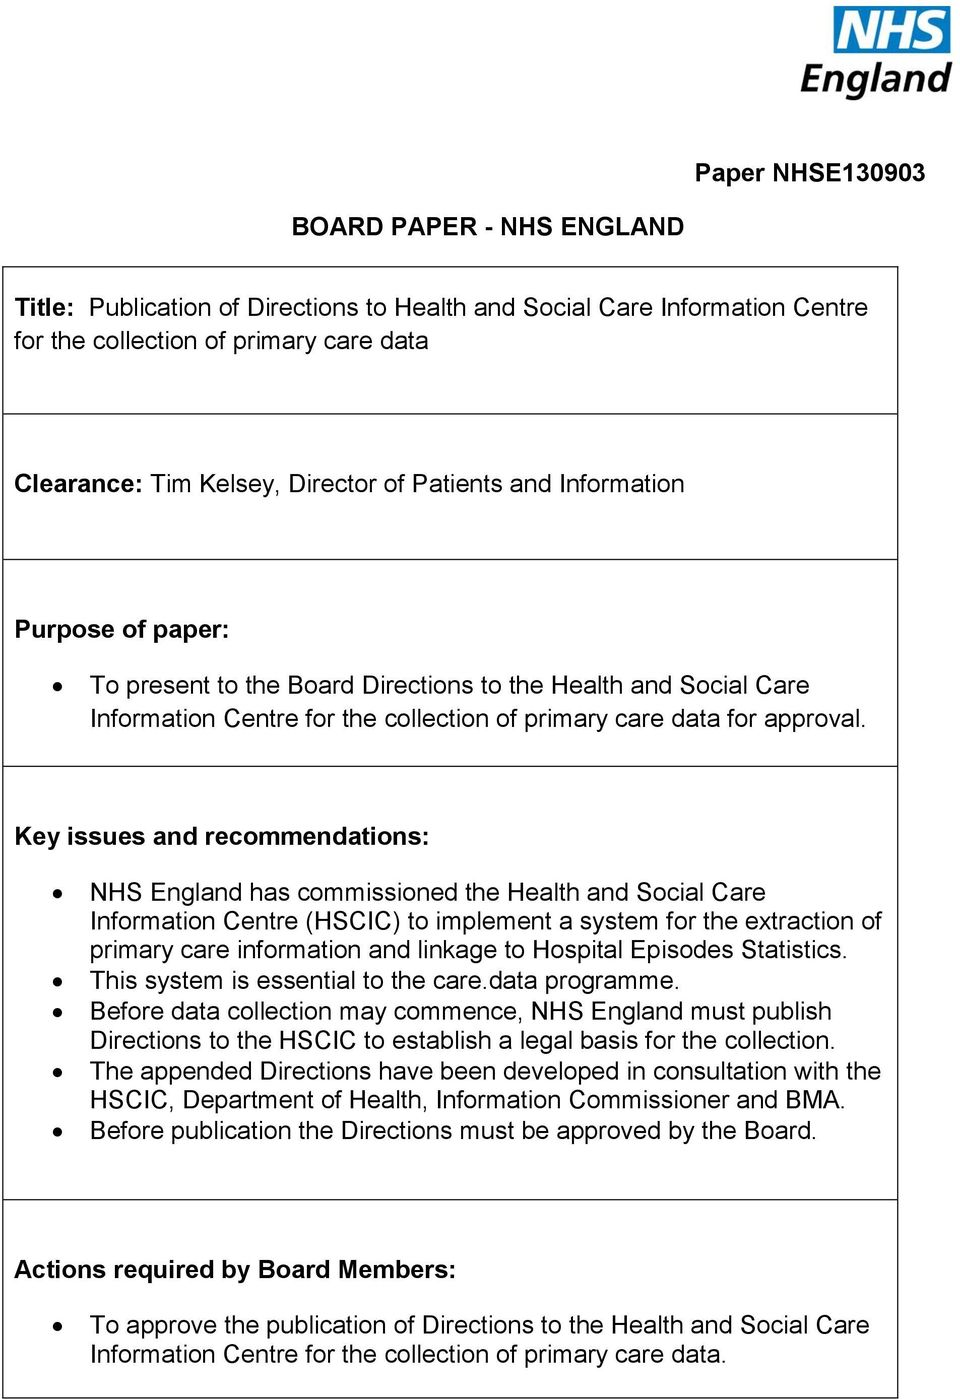 Key issues and recommendations: NHS England has commissioned the Health and Social Care Information Centre (HSCIC) to implement a system for the extraction of primary care information and linkage to